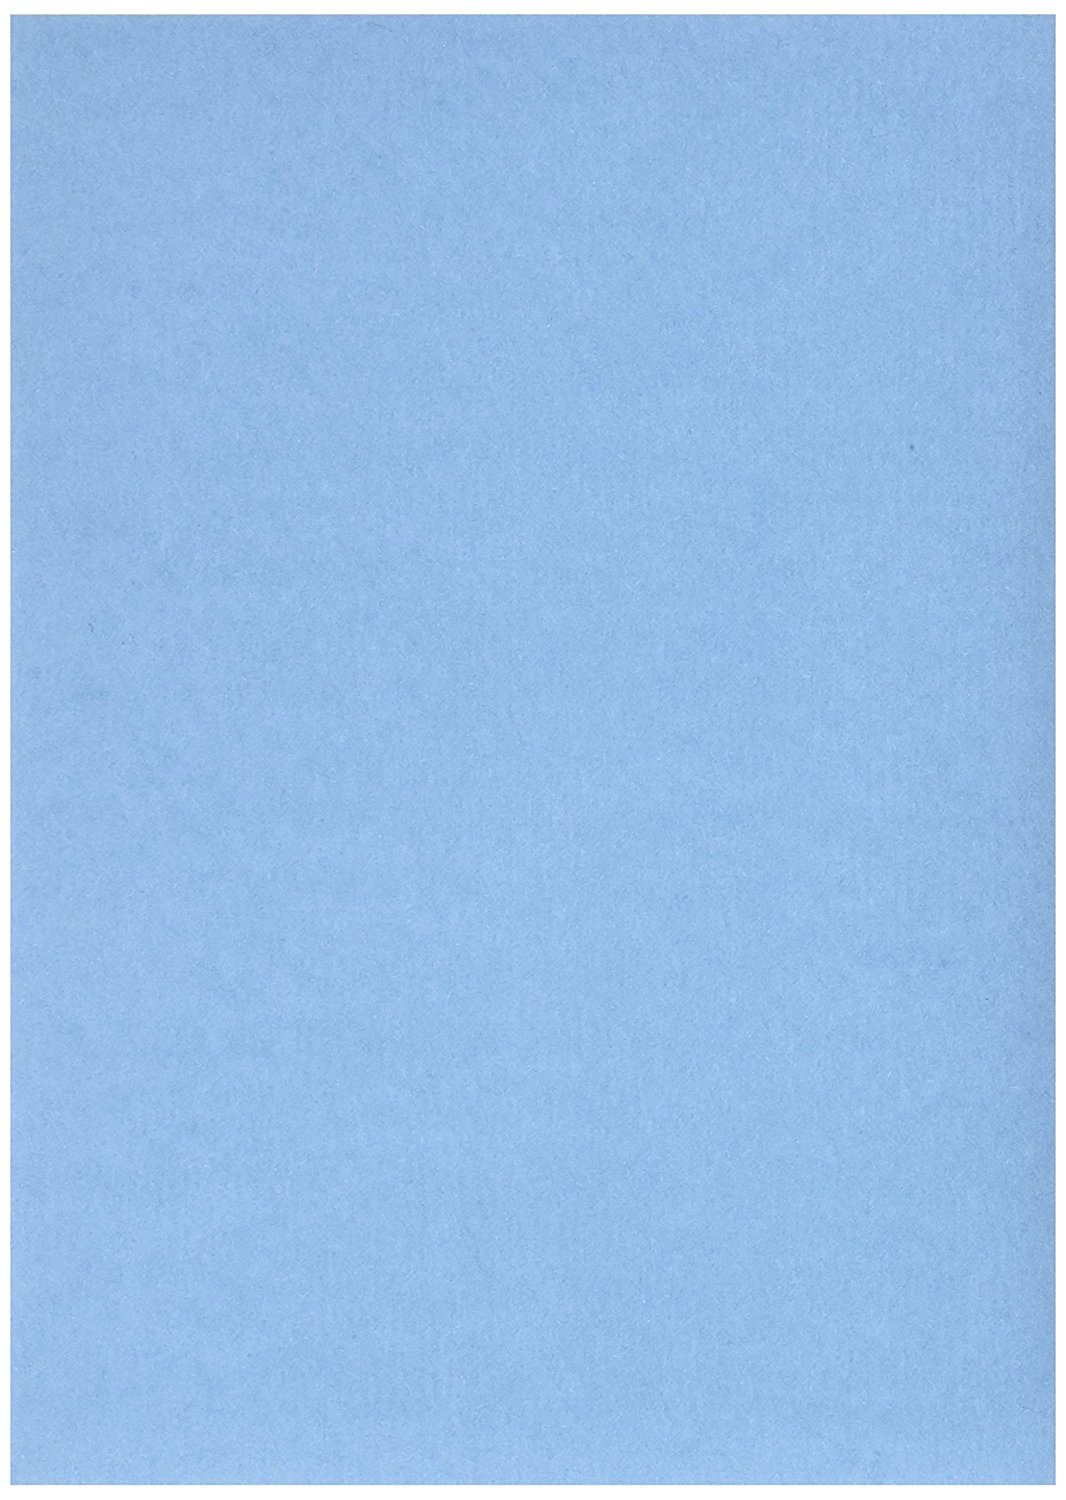 Nature Print Printing Paper - the Sun Prints it, 5 X 7 in, Pack of 40 (2-(Pack)) Nature Print Paper